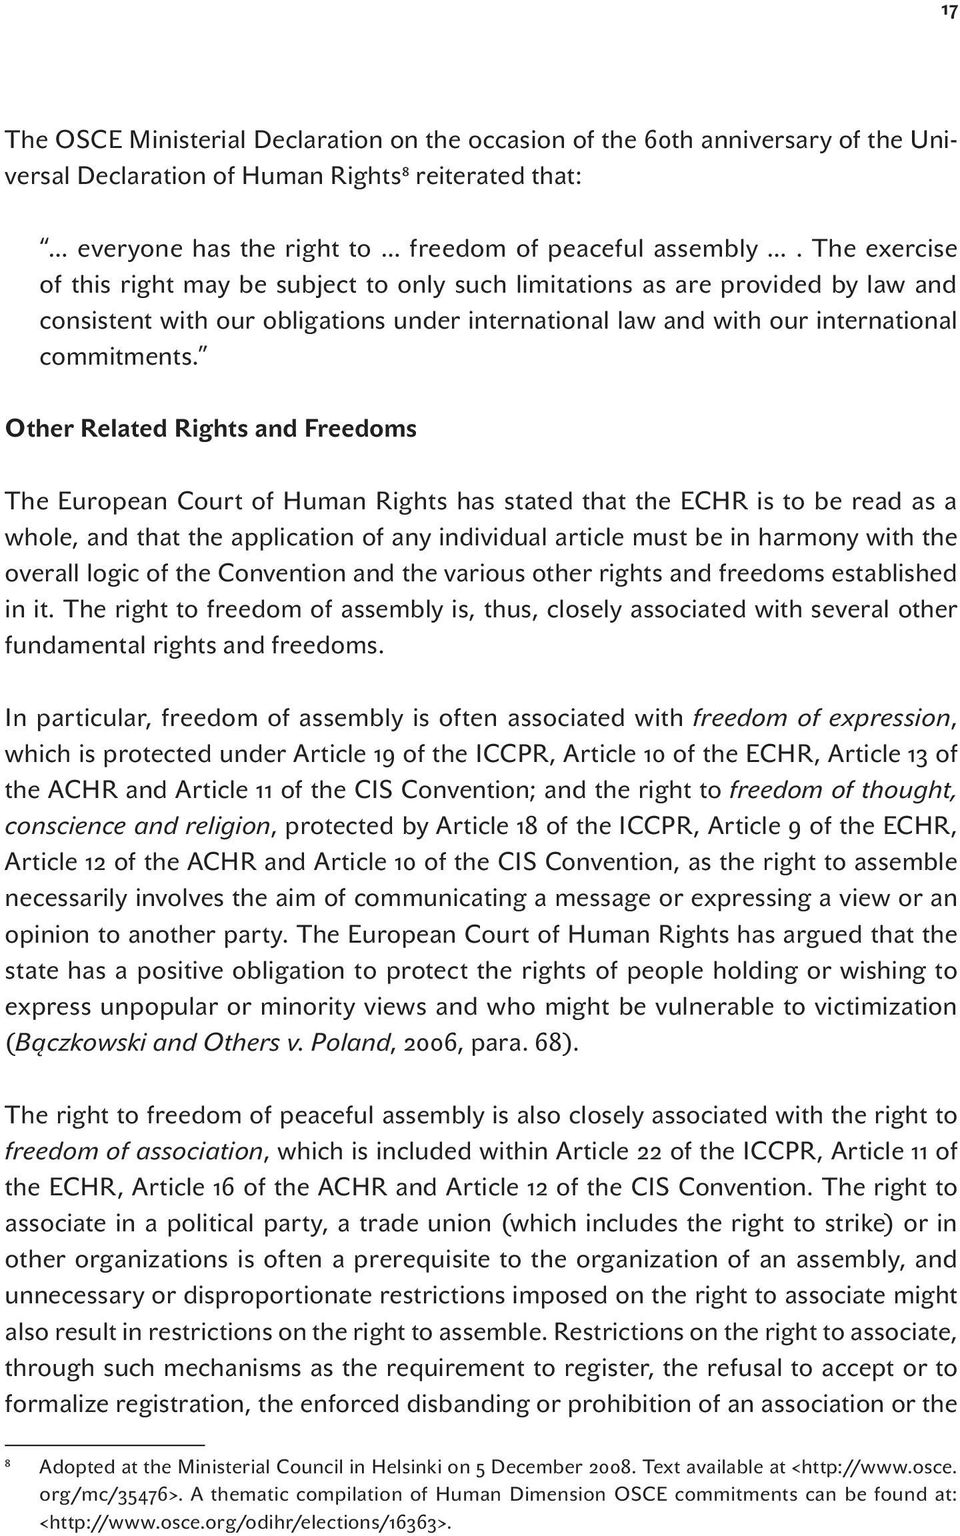 Other Related Rights and Freedoms The European Court of Human Rights has stated that the ECHR is to be read as a whole, and that the application of any individual article must be in harmony with the